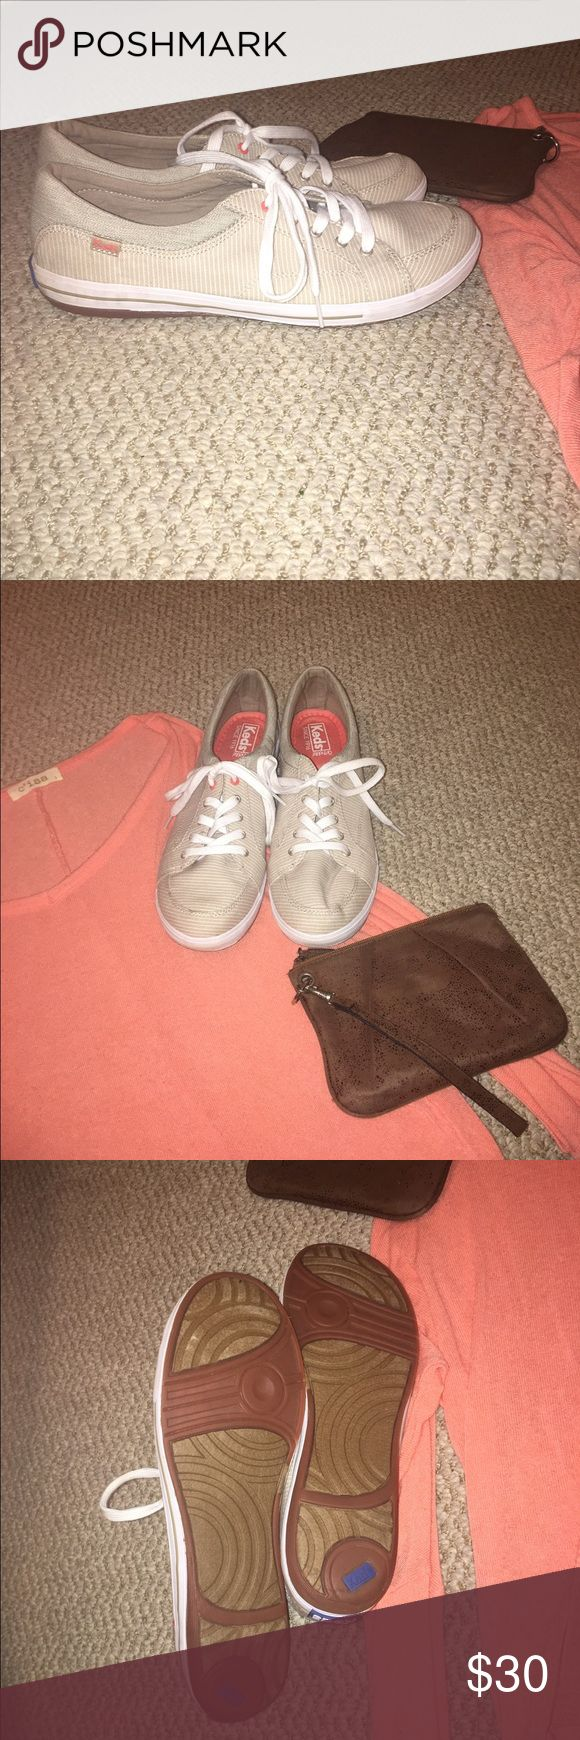 Keds Tennis Shoes These are a very comfortable yet stylish pair of Keds. They are tan and white striped. They have only been worn once, so they are in great condition. Keds Shoes Sneakers